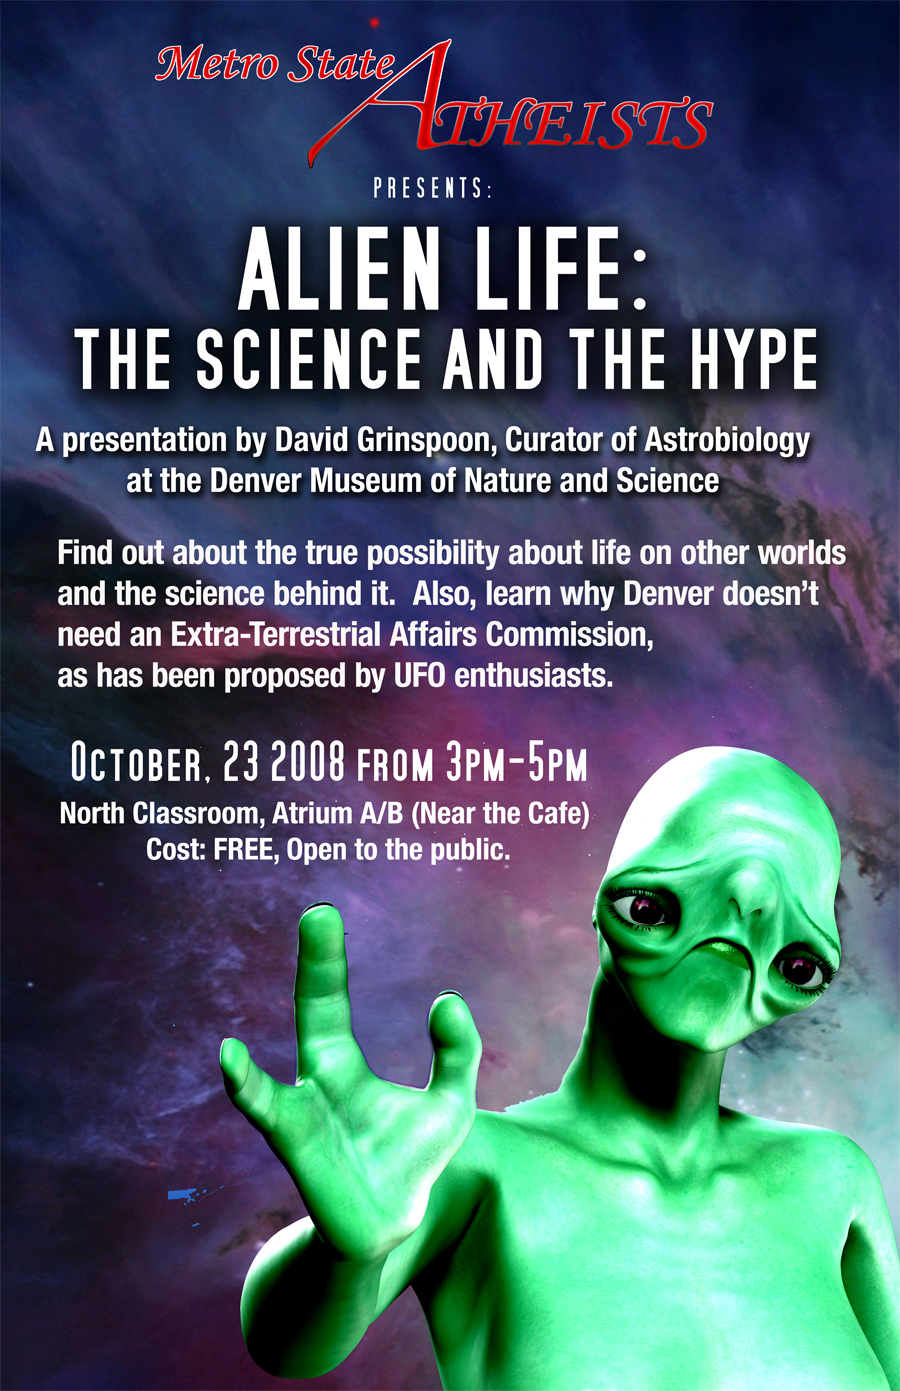 "//metrostateatheists.files.wordpress.com/2008/10/alien-life-flyer21.jpg"" cannot be displayed, because it contains errors."